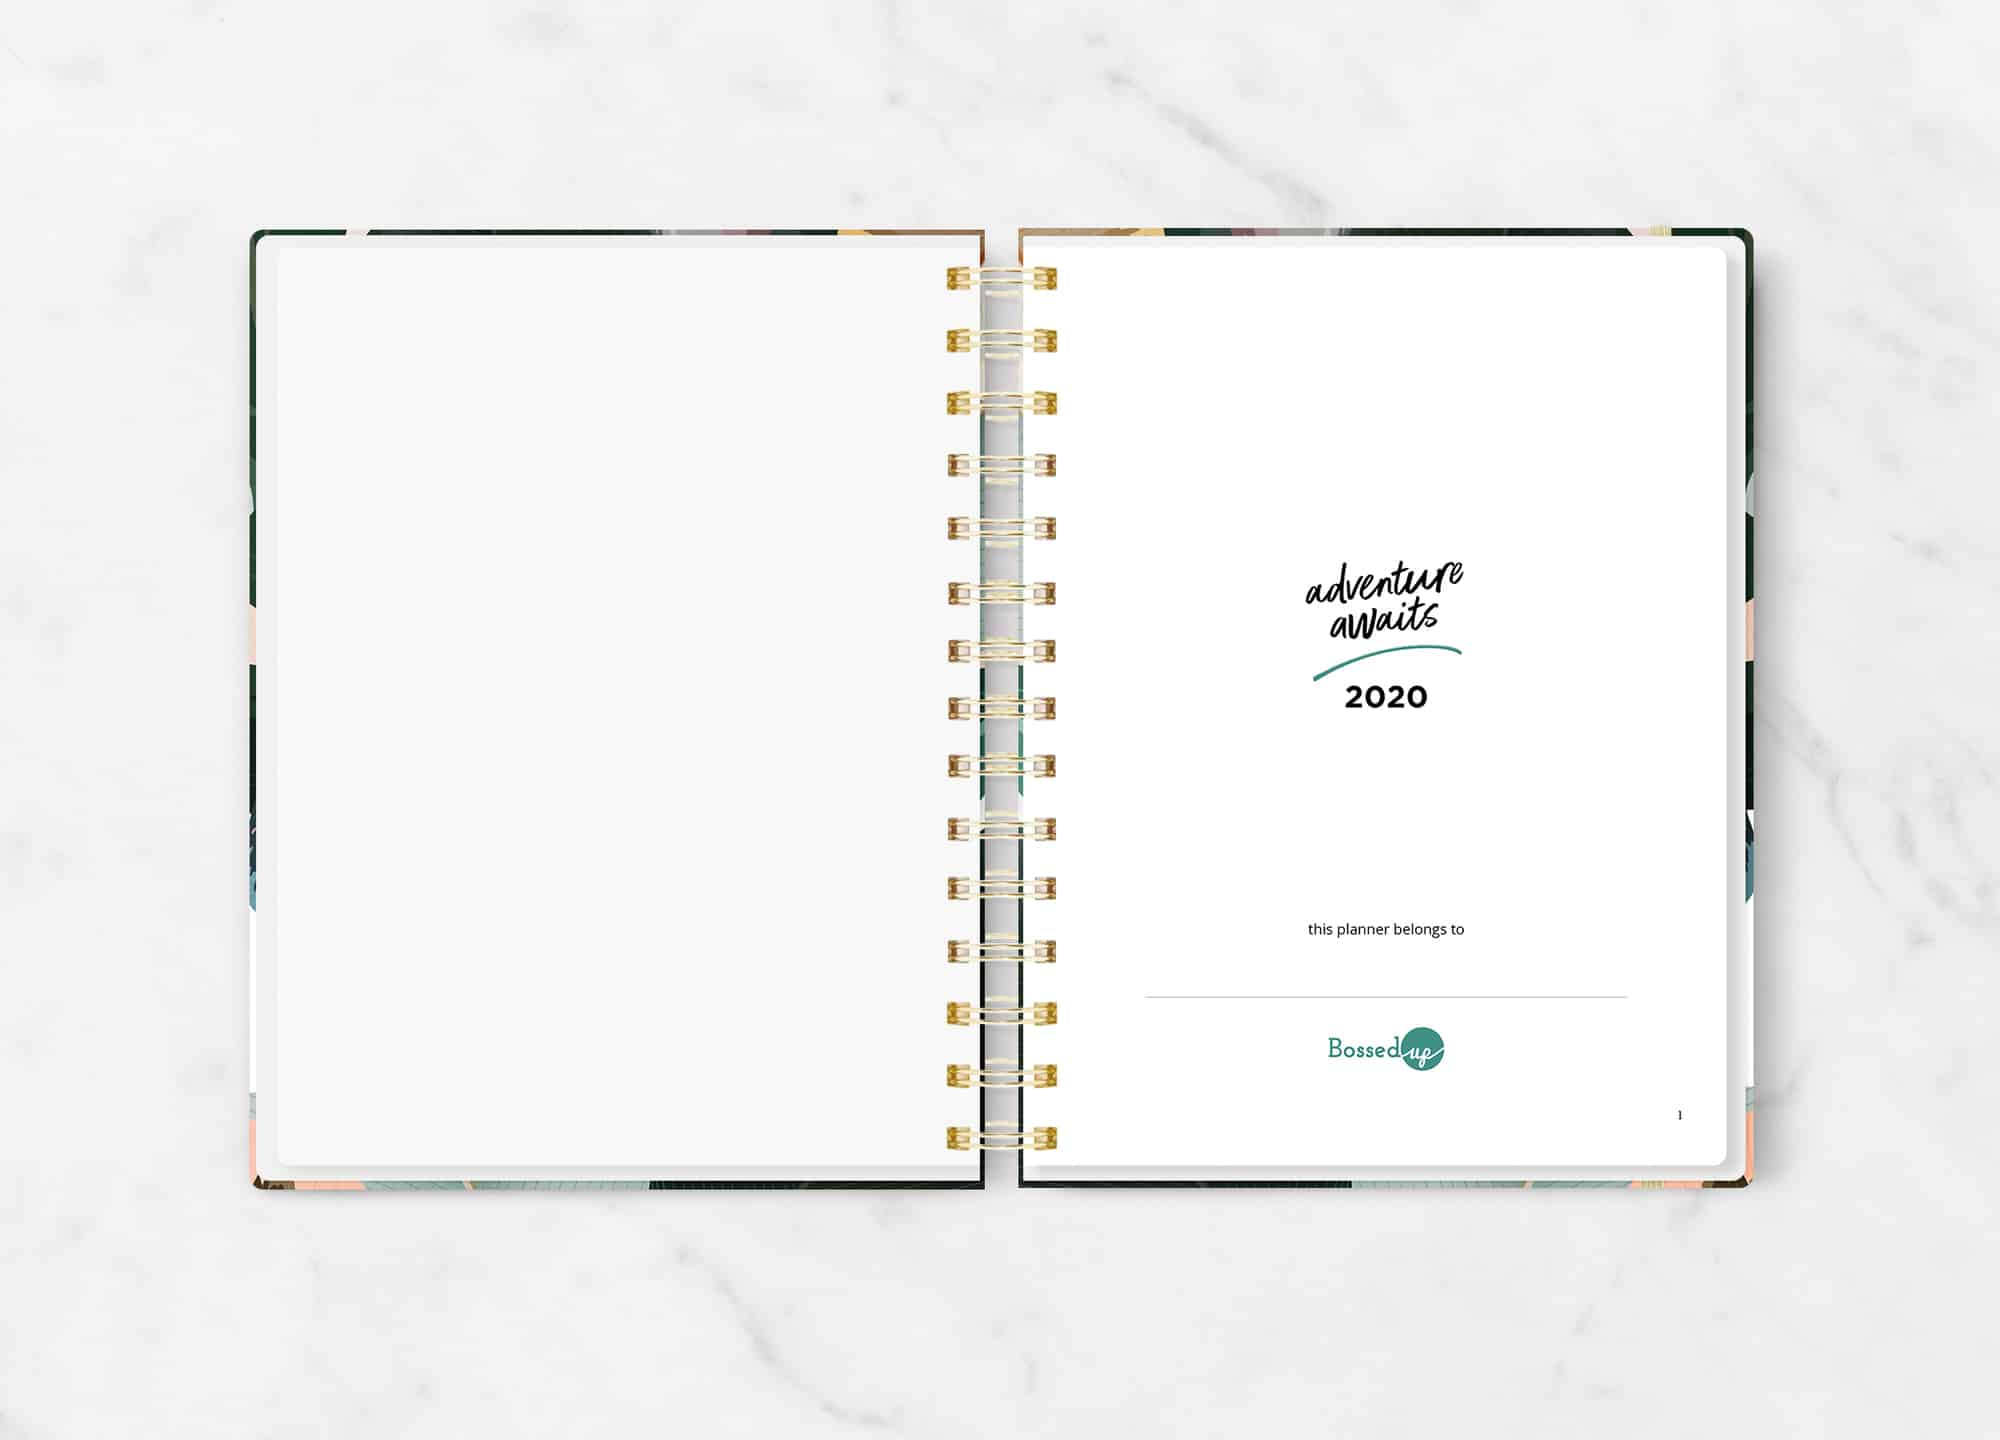 Bossed Up Lifetracker Planner | Bossed Up